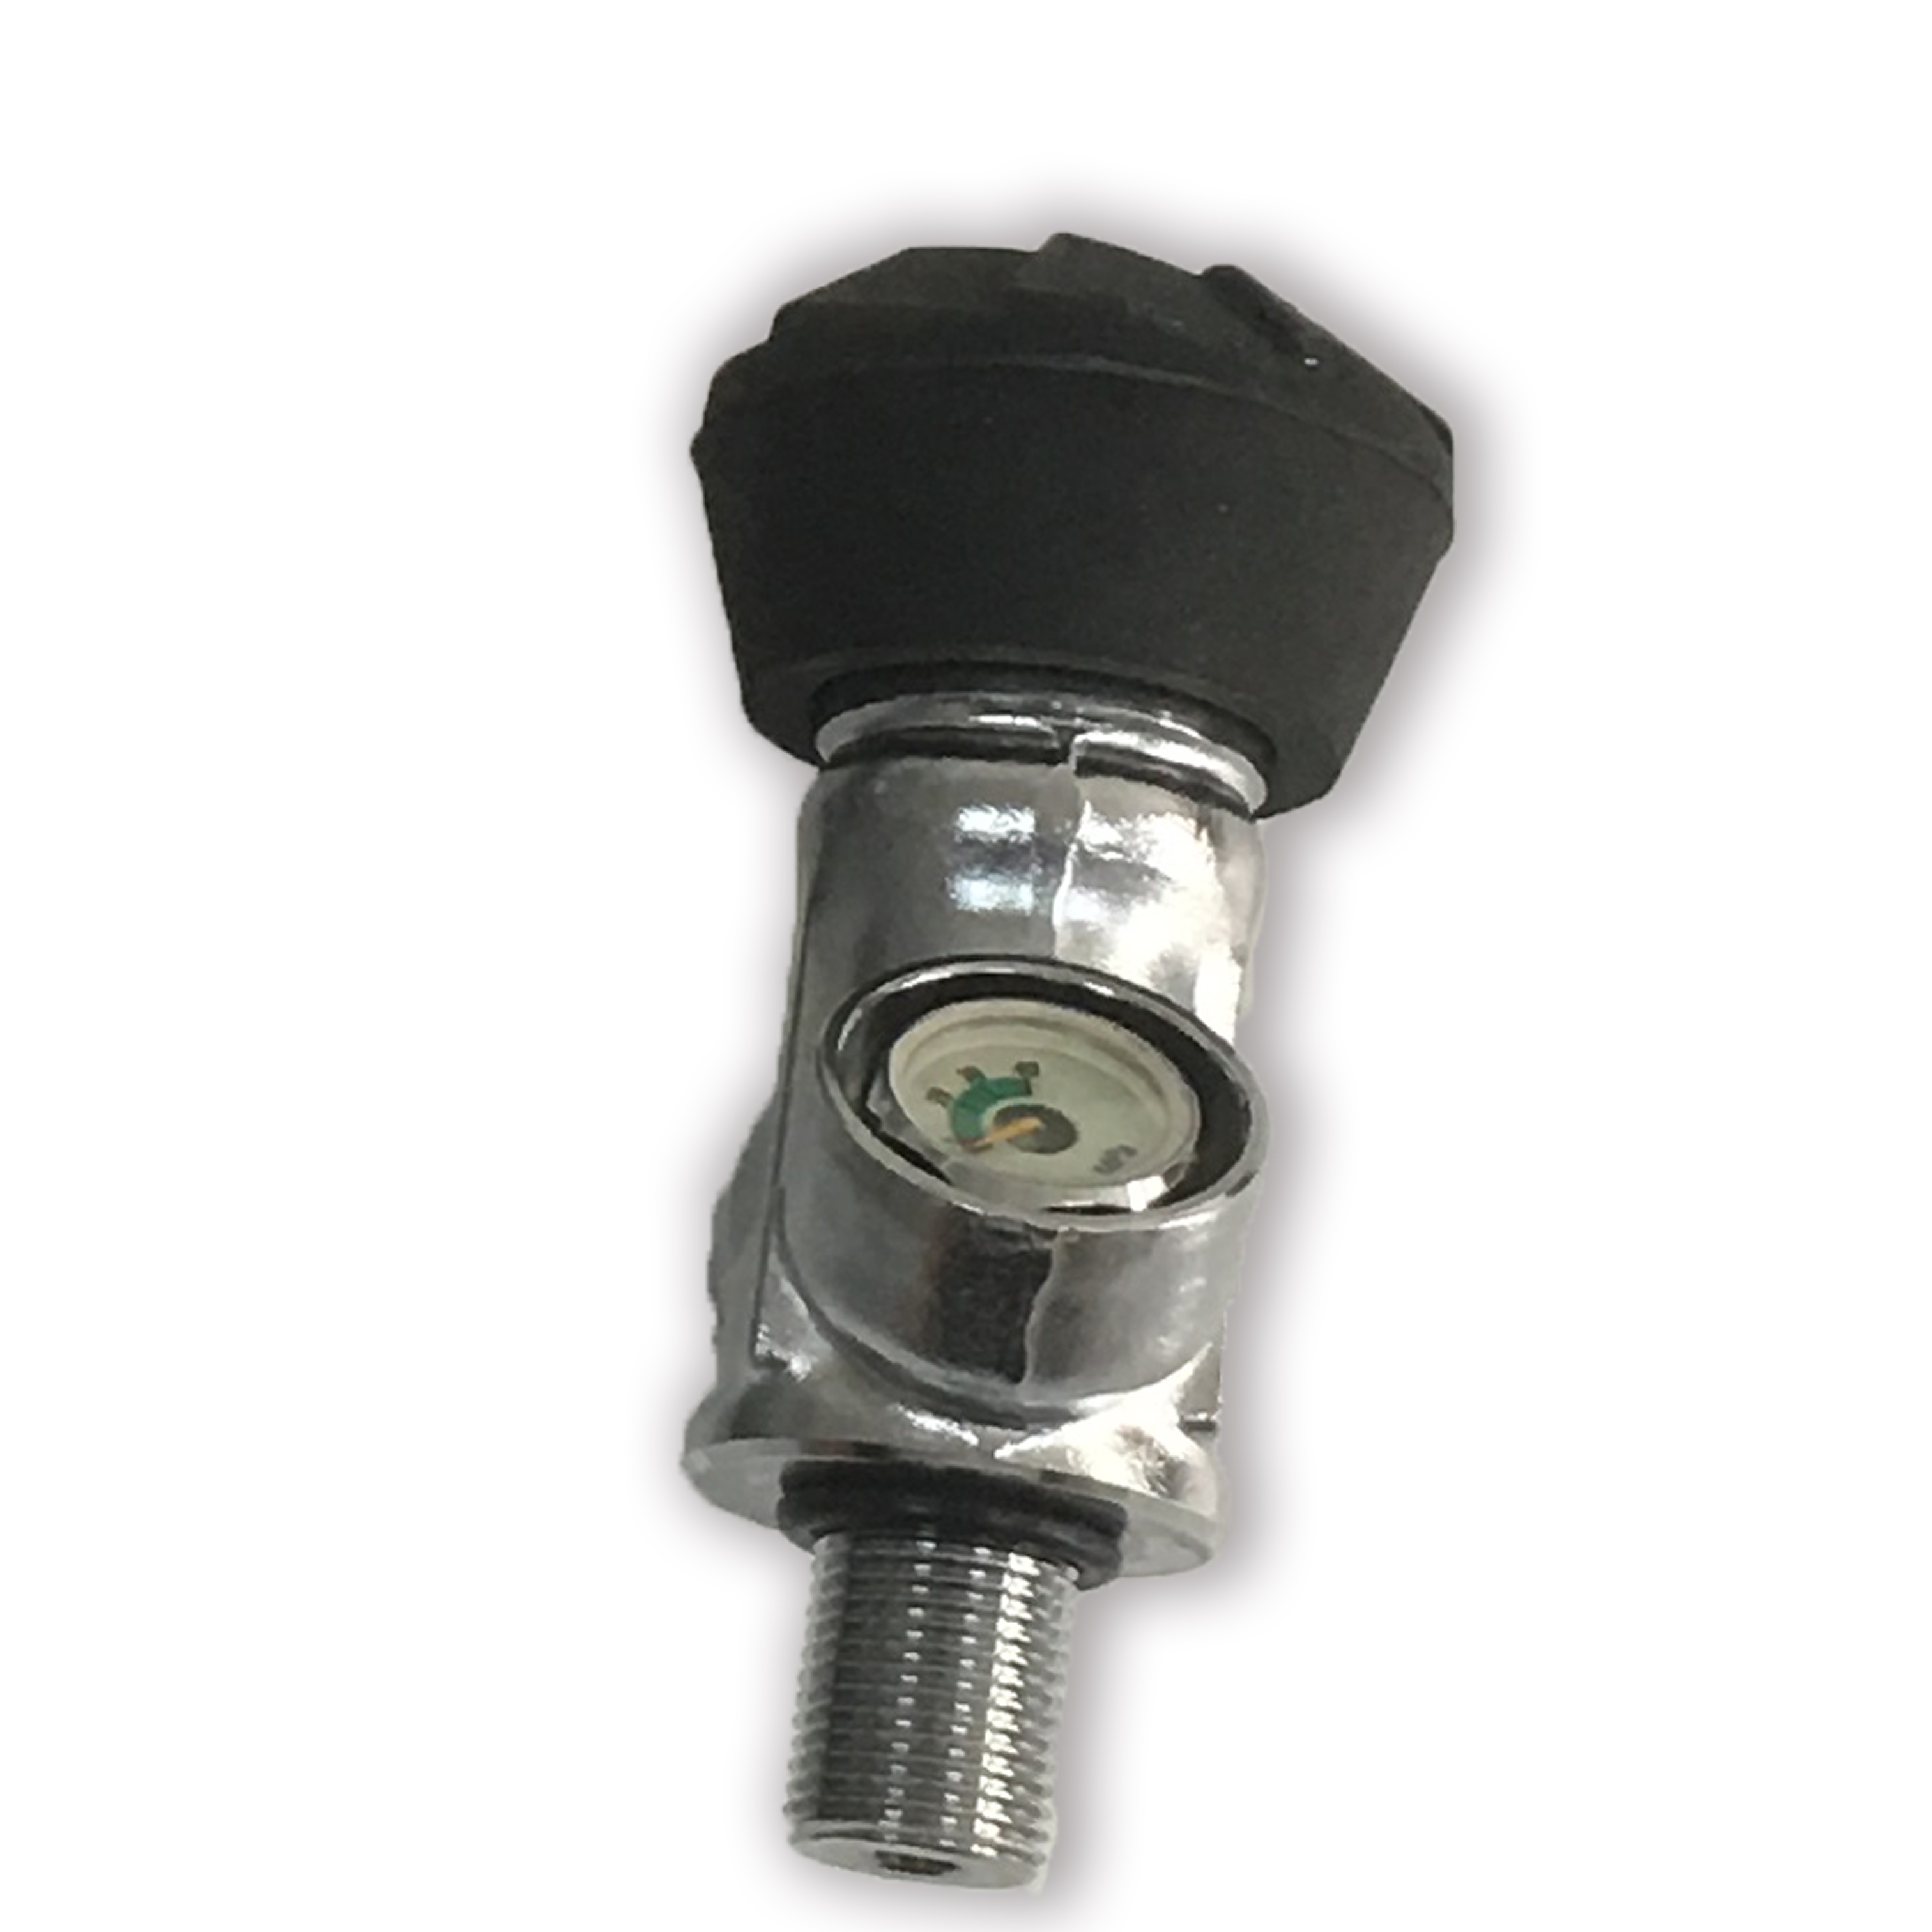 AC931 Pcp Air Gun Target Shooting Valve  For Airforce Pcp Paintball Cylinders For Diving Black Valve